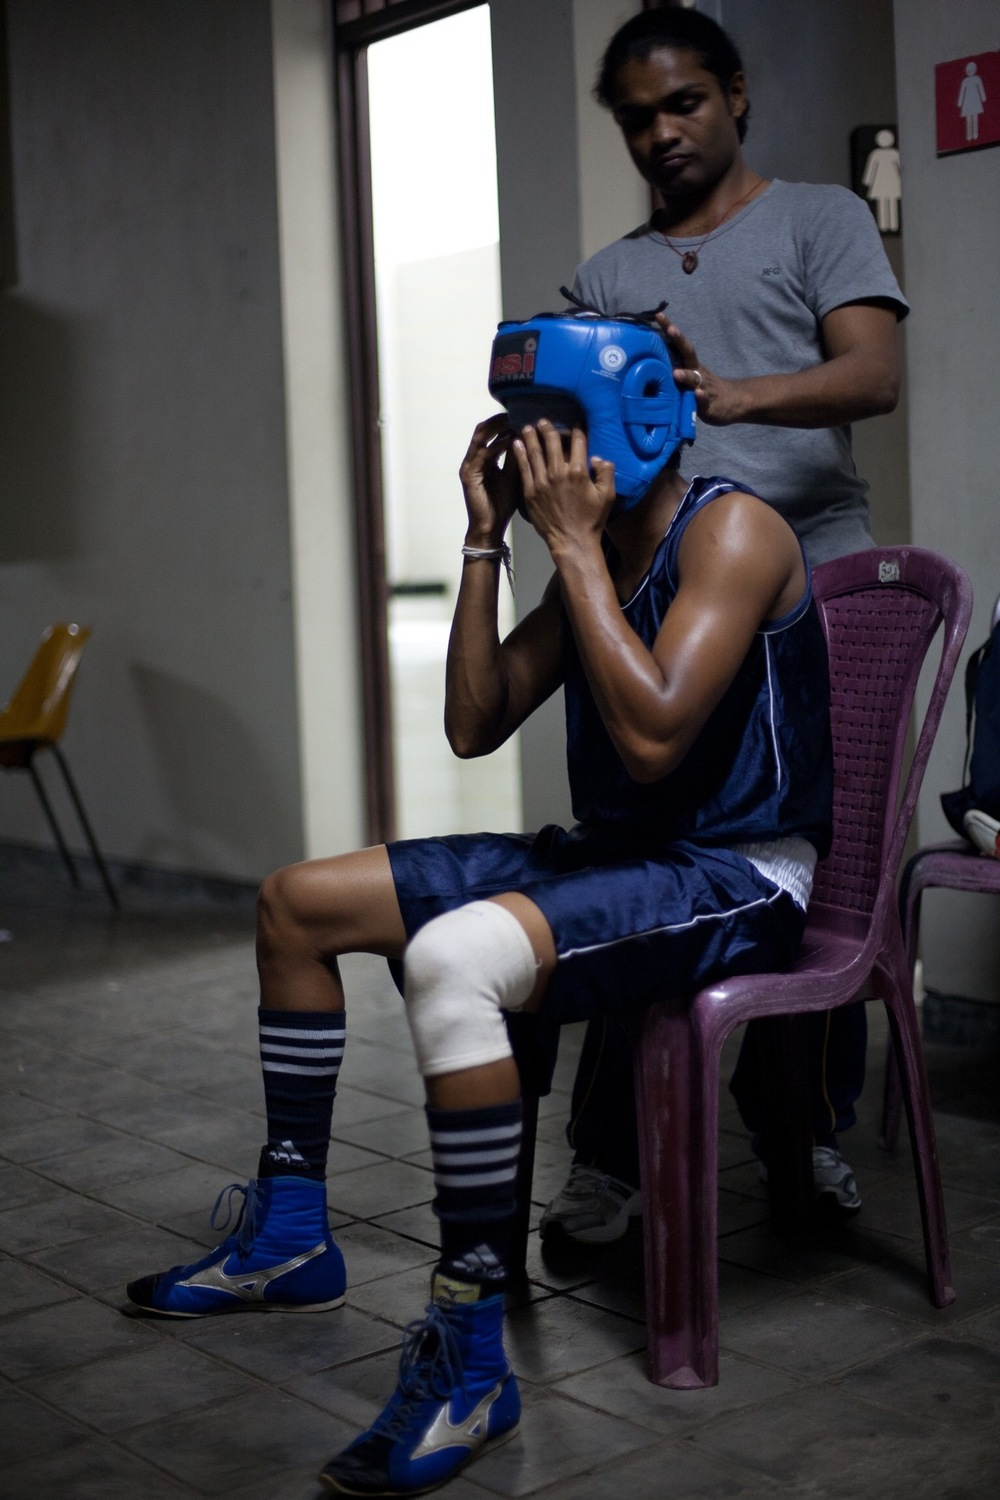 Anusha Kodituwakku gearing up for fight (© Lee Bazalgette)